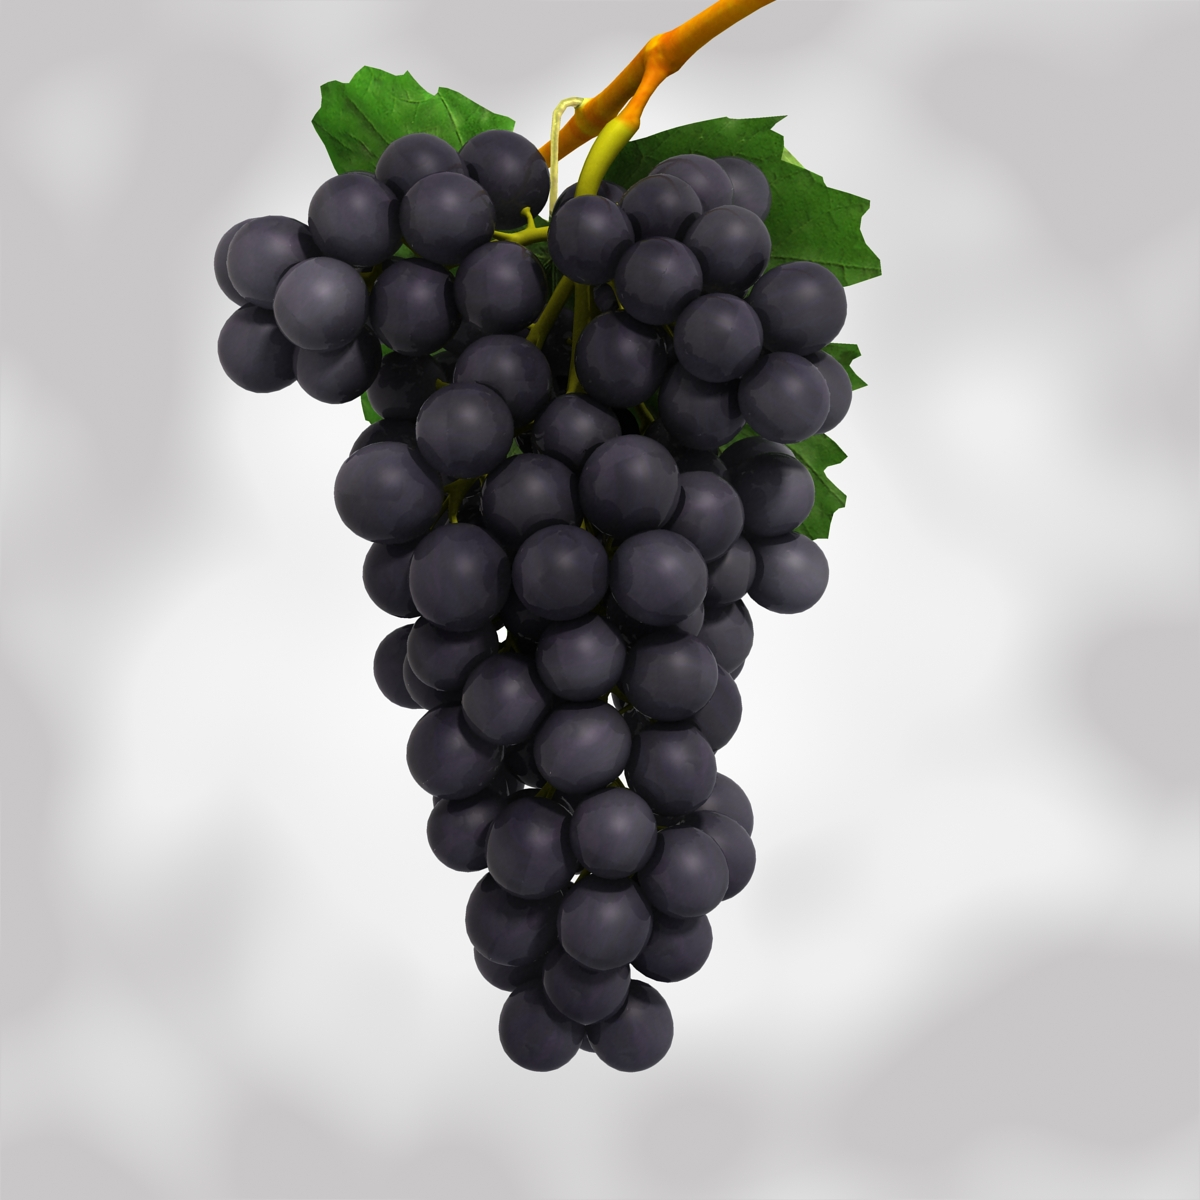 grapes black and blue 3d model 3ds max fbx c4d obj 204267